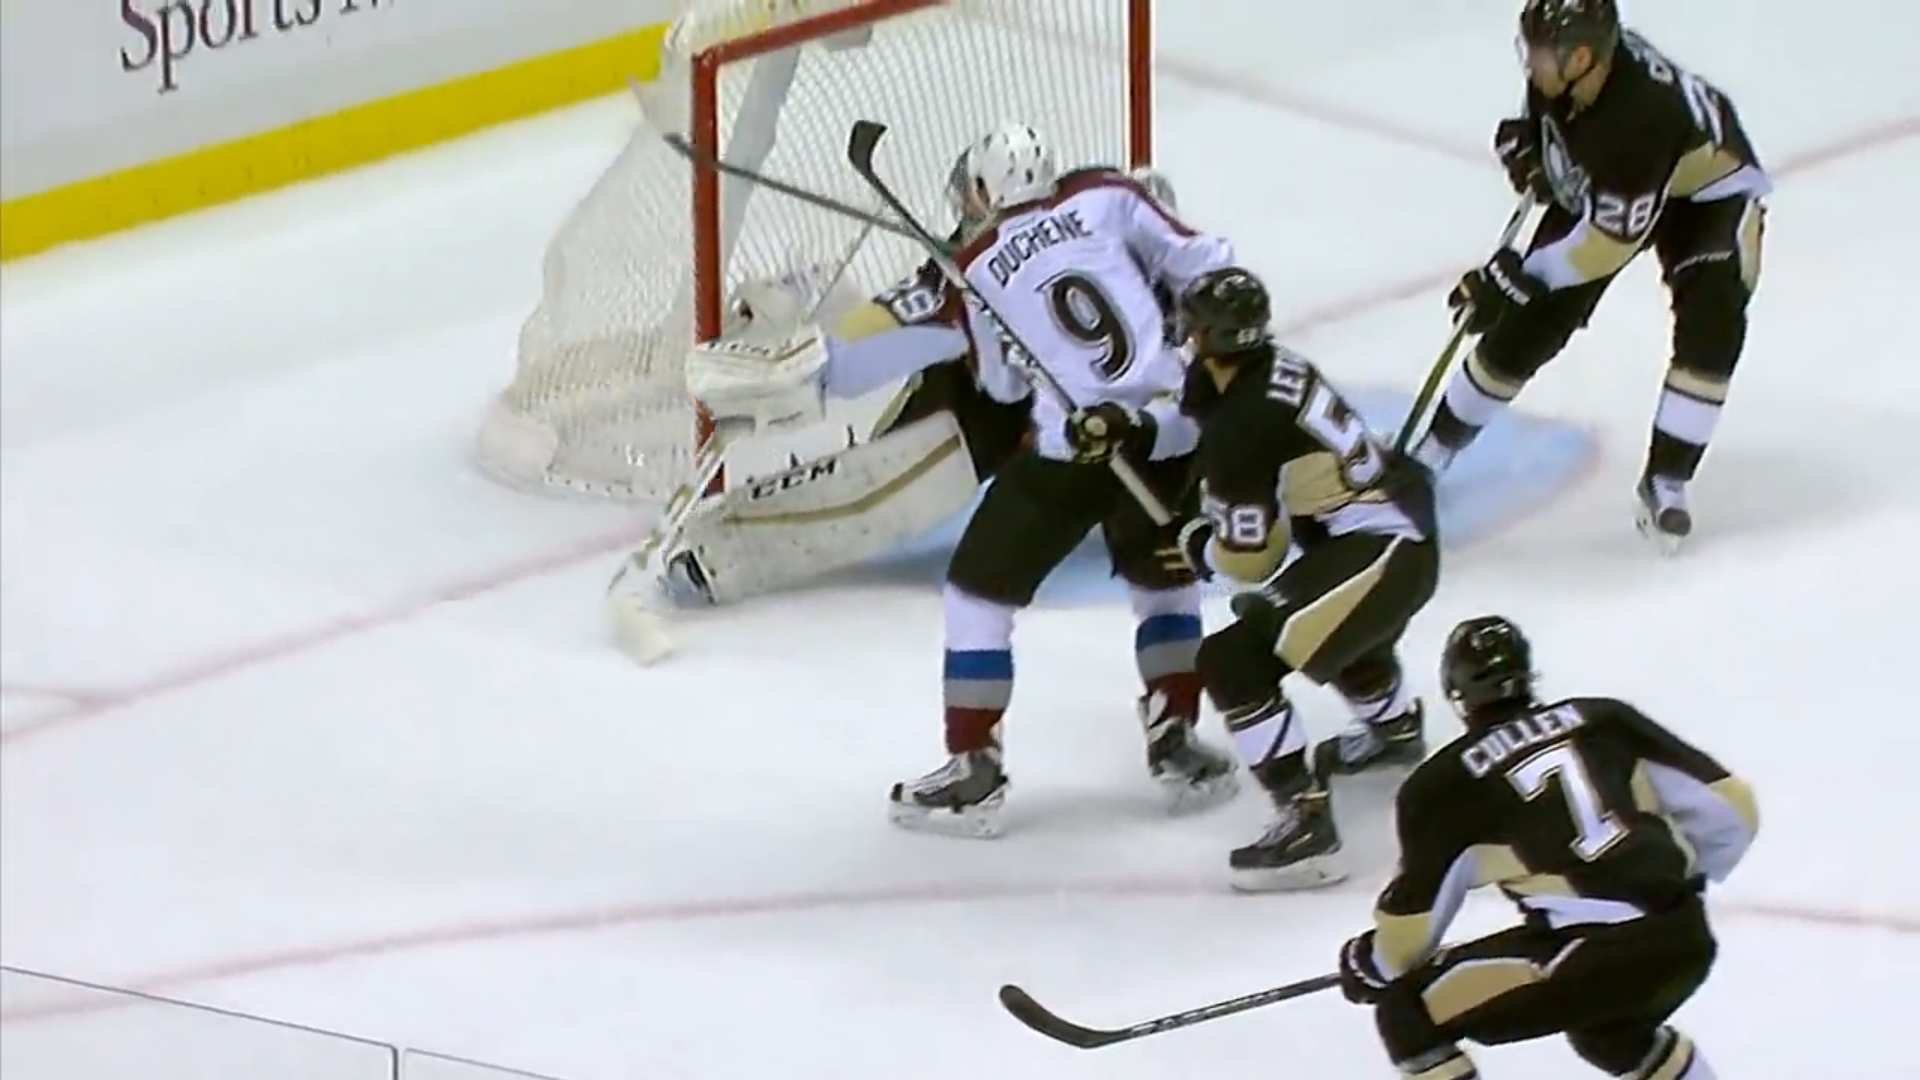 Patrick-Roy-Show7-Top-Plays.jpg